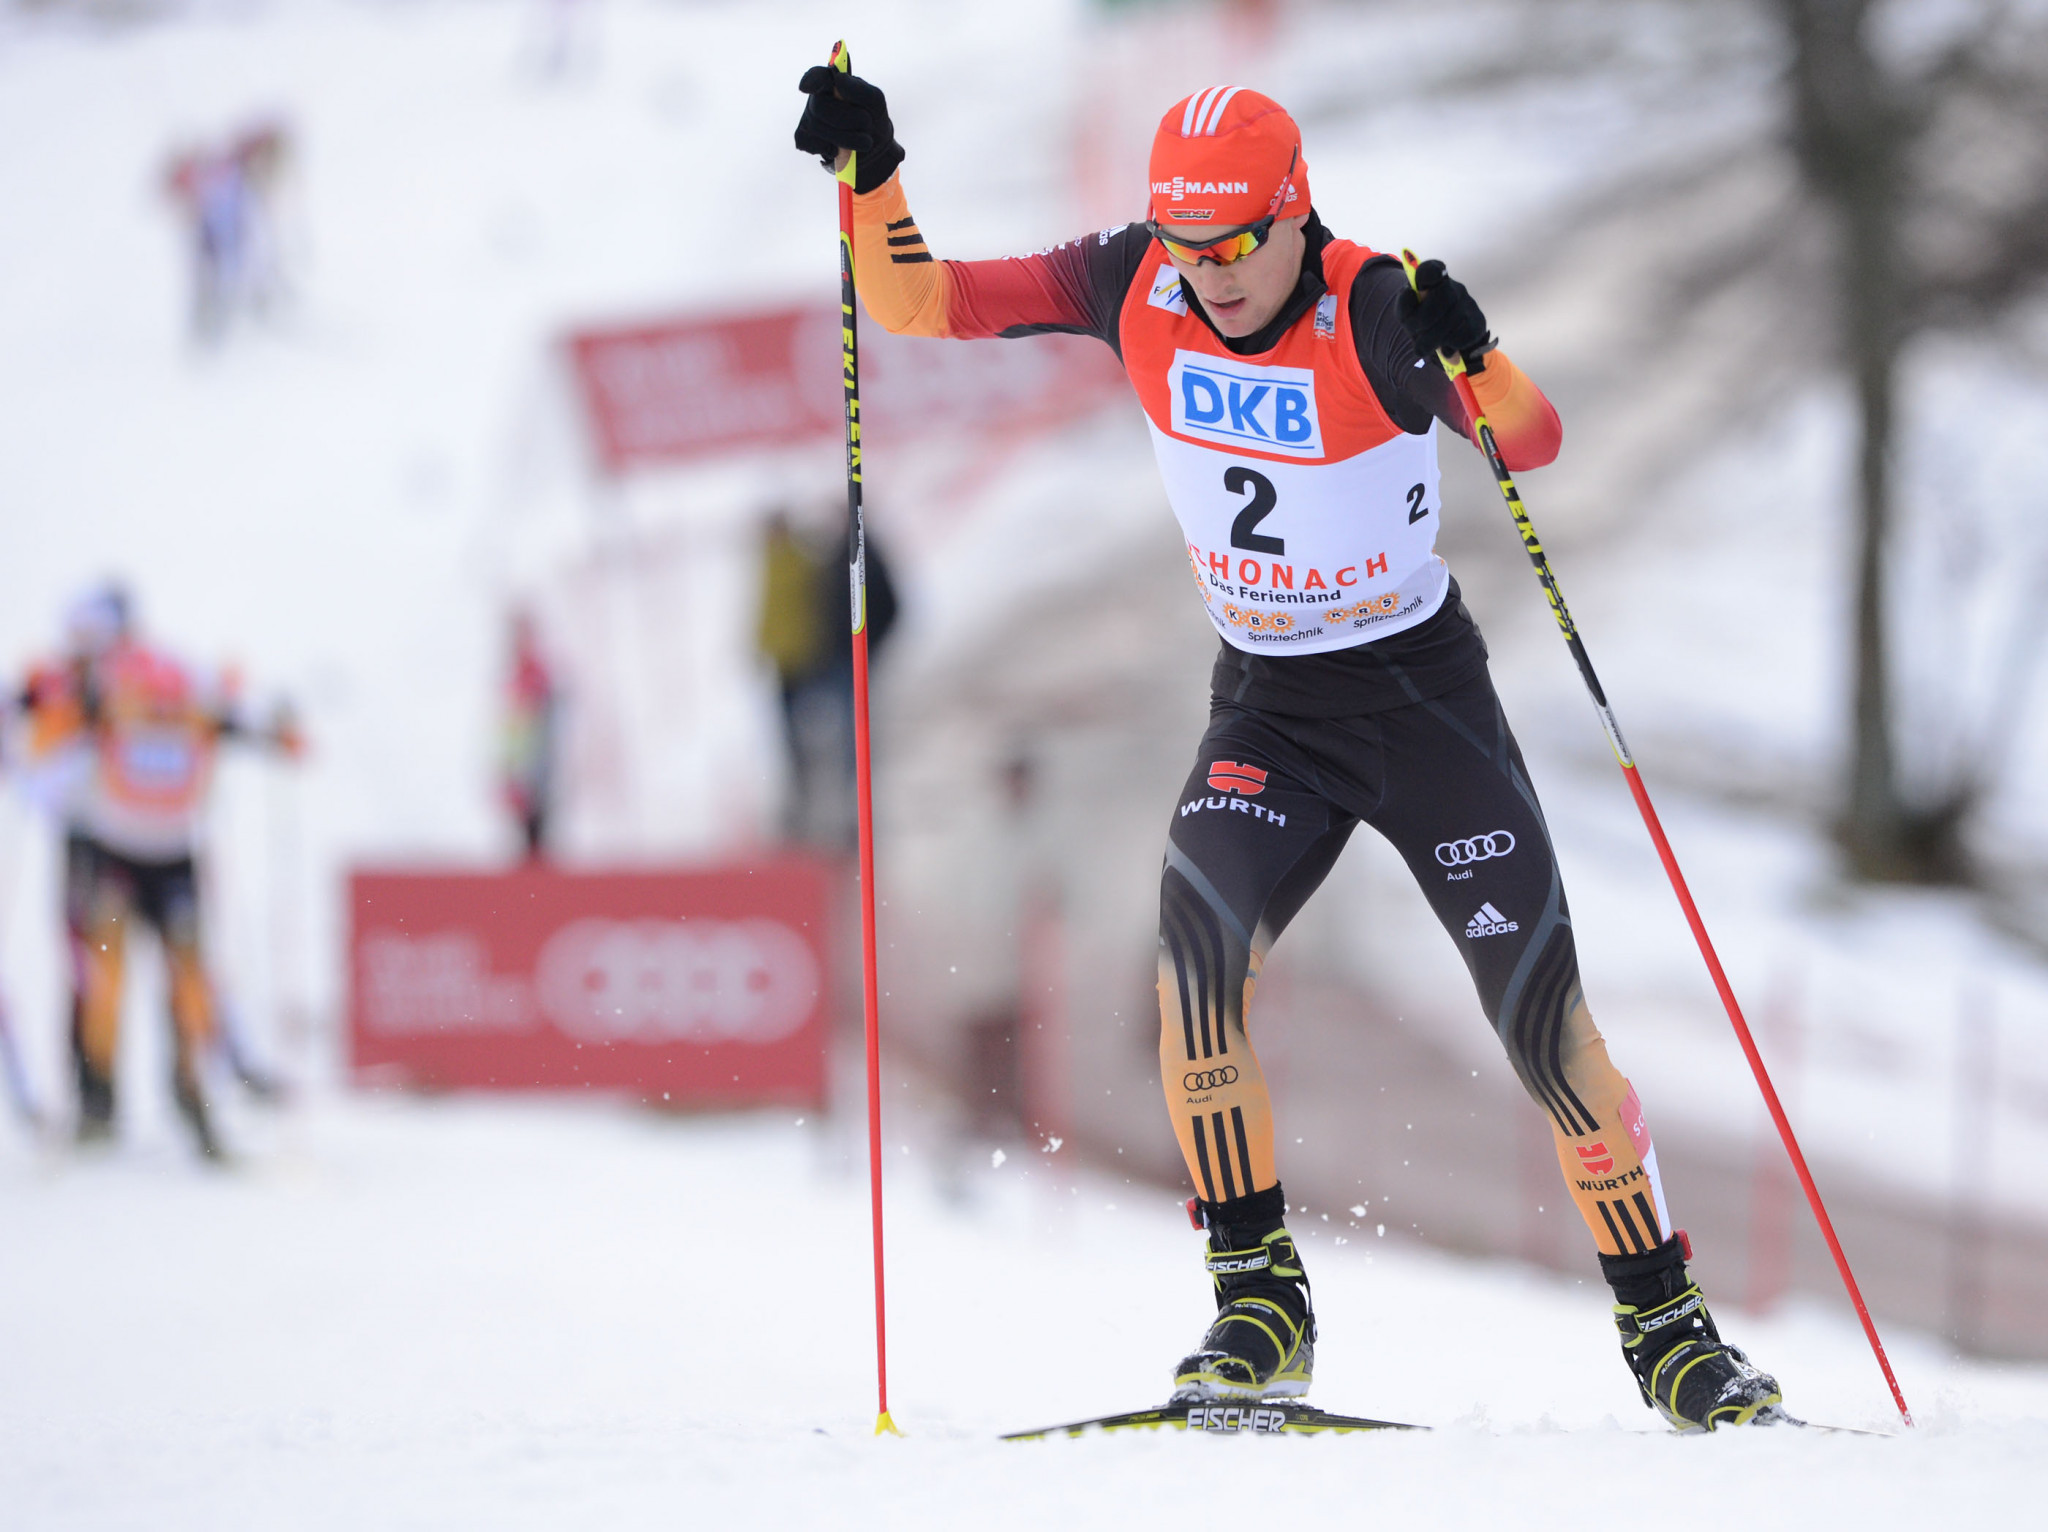 Haug announces Nordic Combined retirement after ski jumping crashes